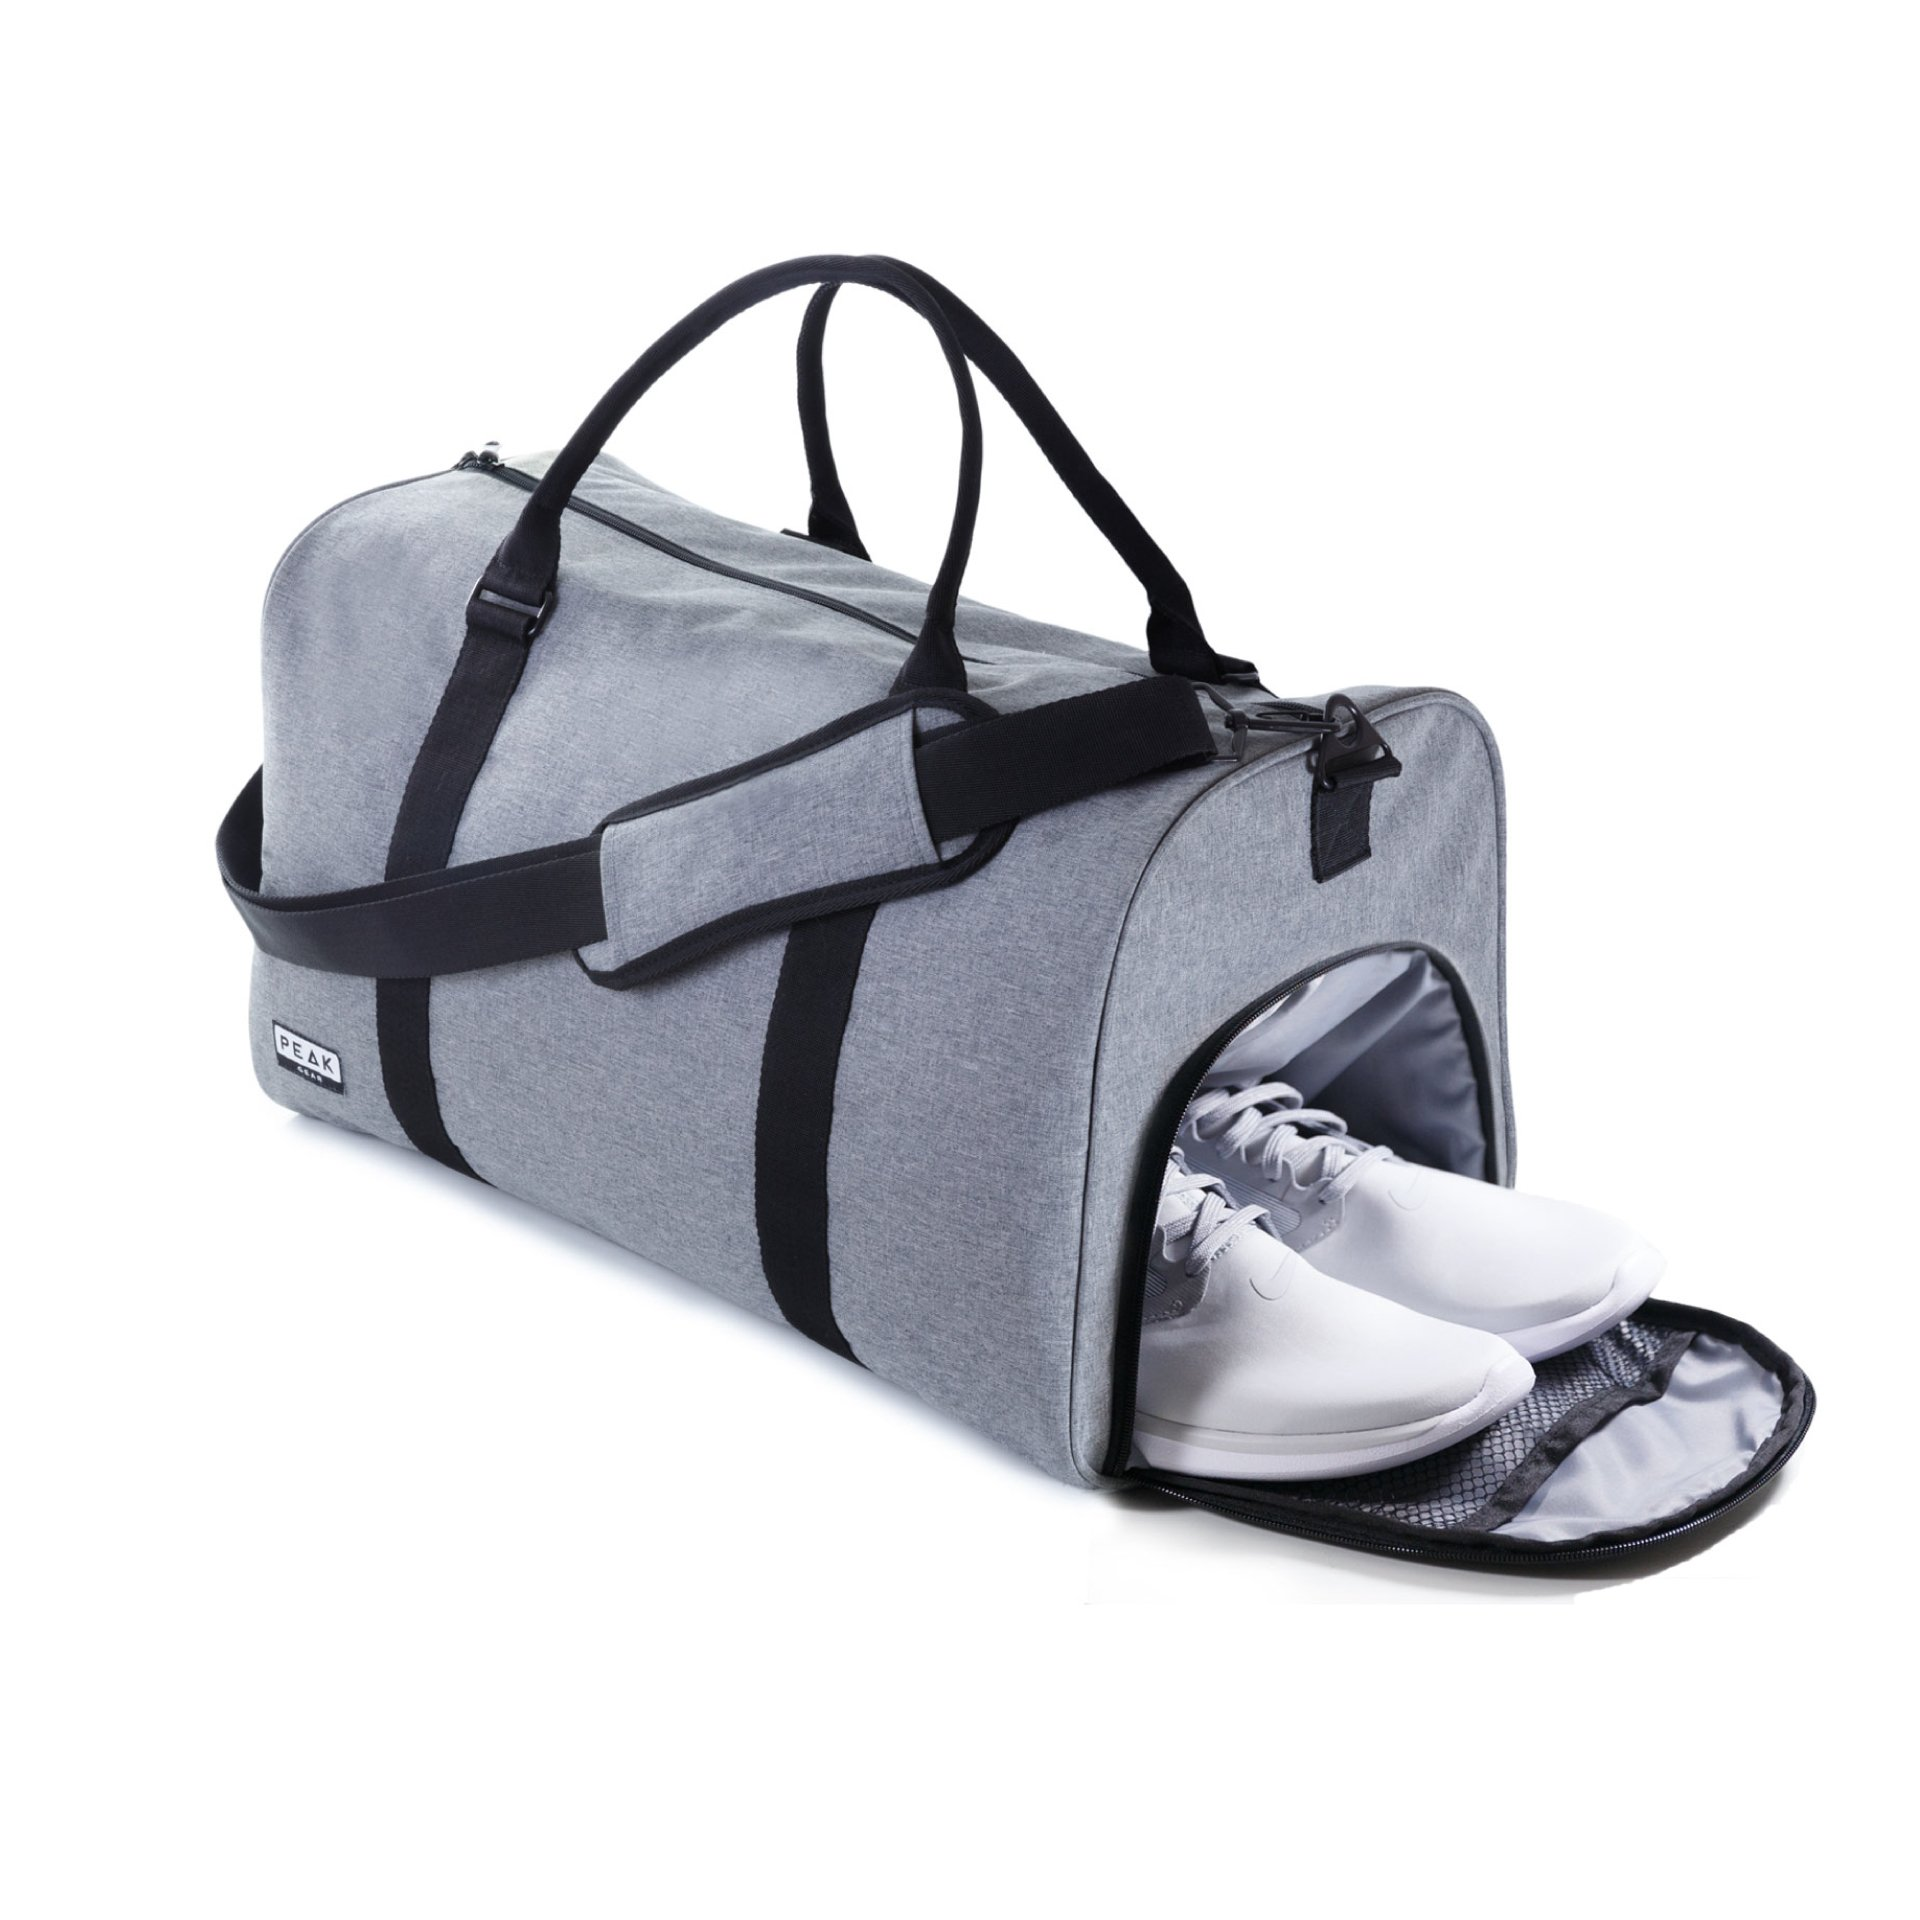 The Weekender Duffel Bag - Travel Carry-On Duffle - INCLUDES Lifetime Lost & Found Service